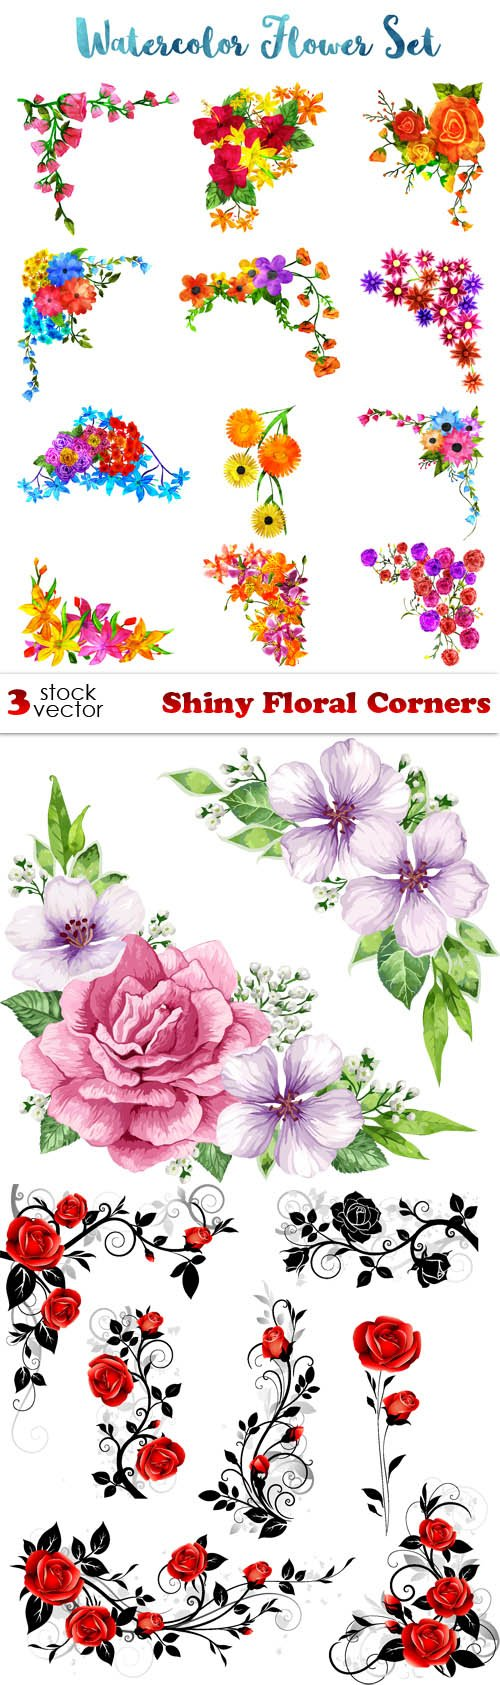 Vectors - Shiny Floral Corners